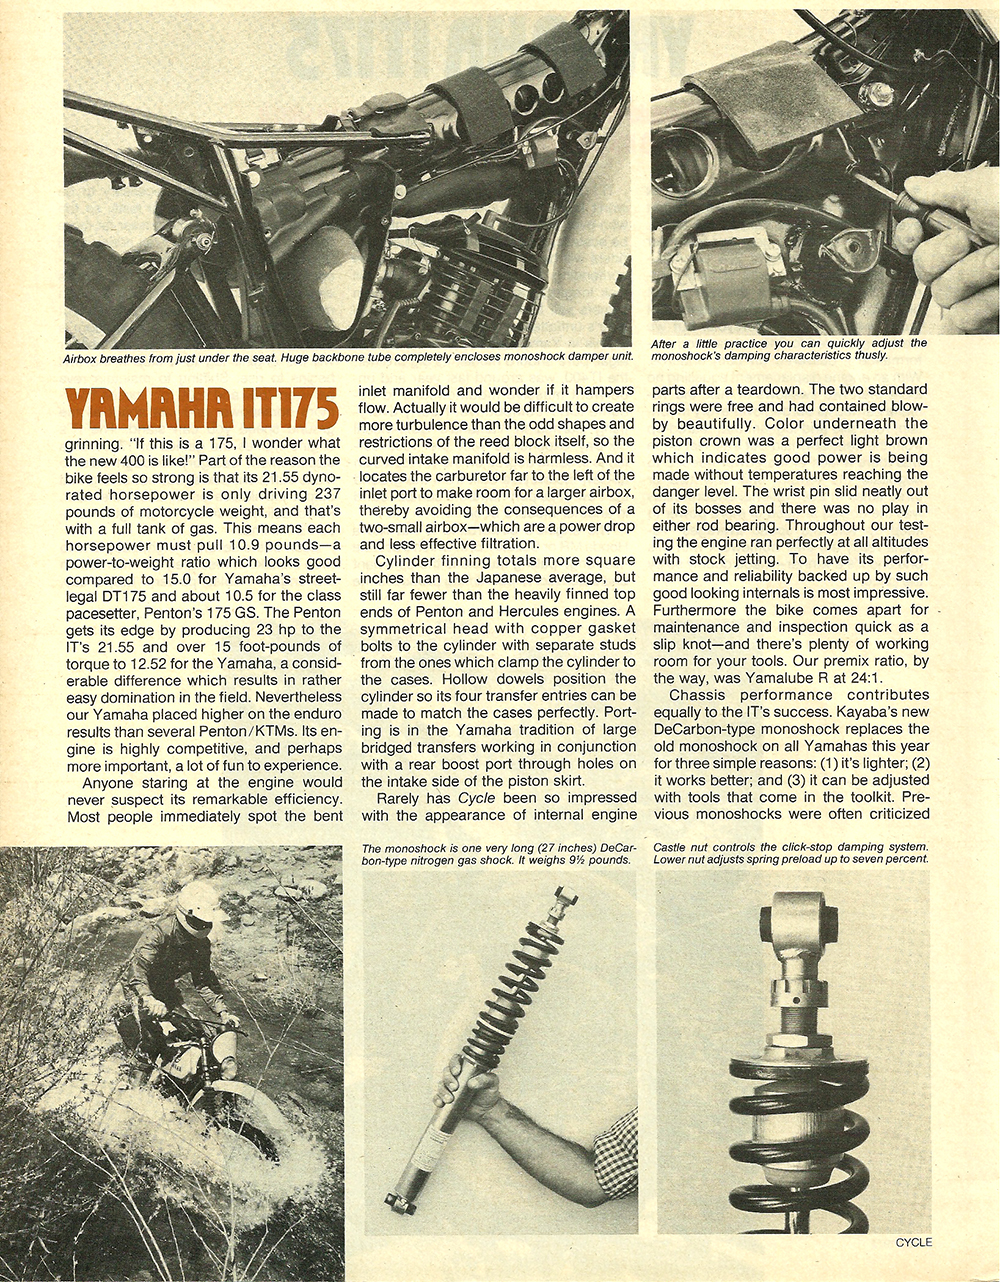 1977 Yamaha IT175 road test 3.jpg